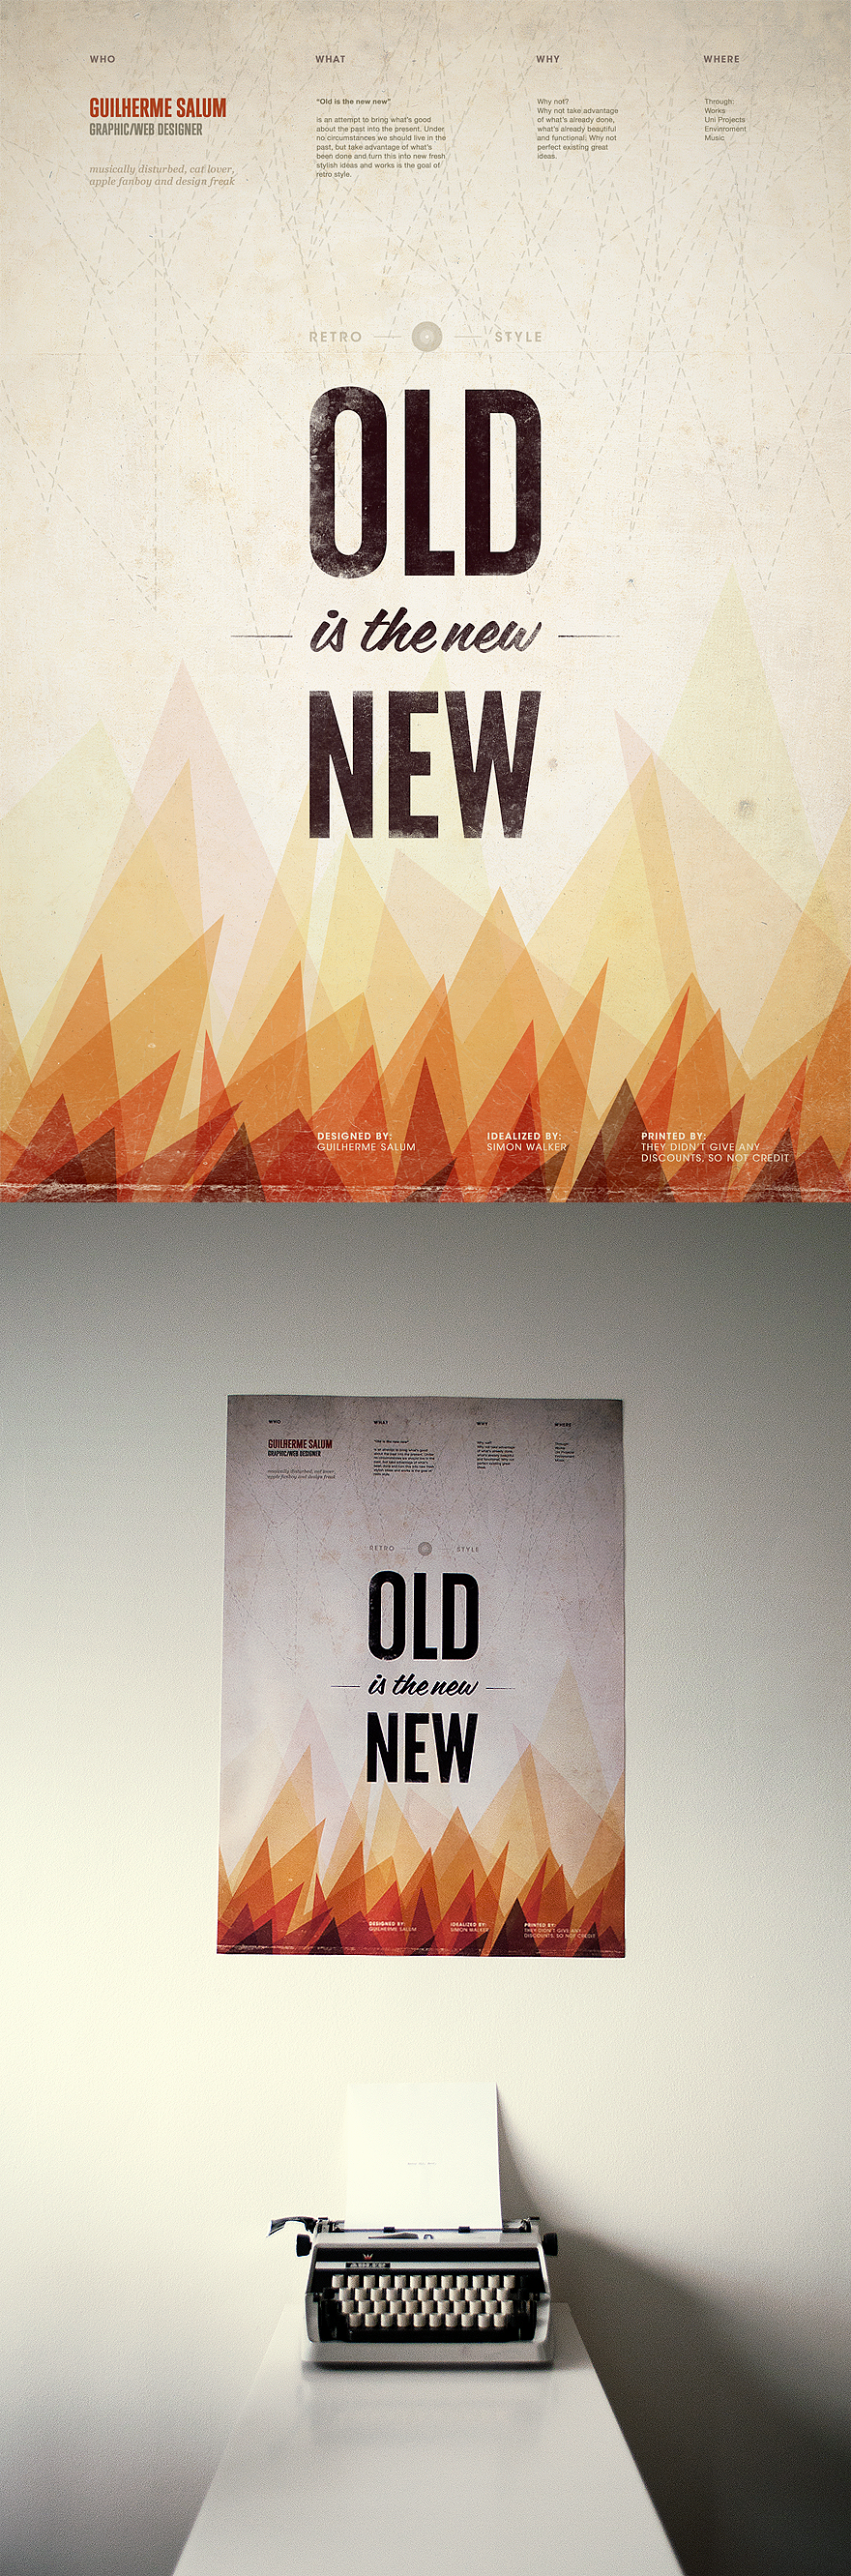 """""""Old is the new new"""" by Guilherme Salum. #texture"""